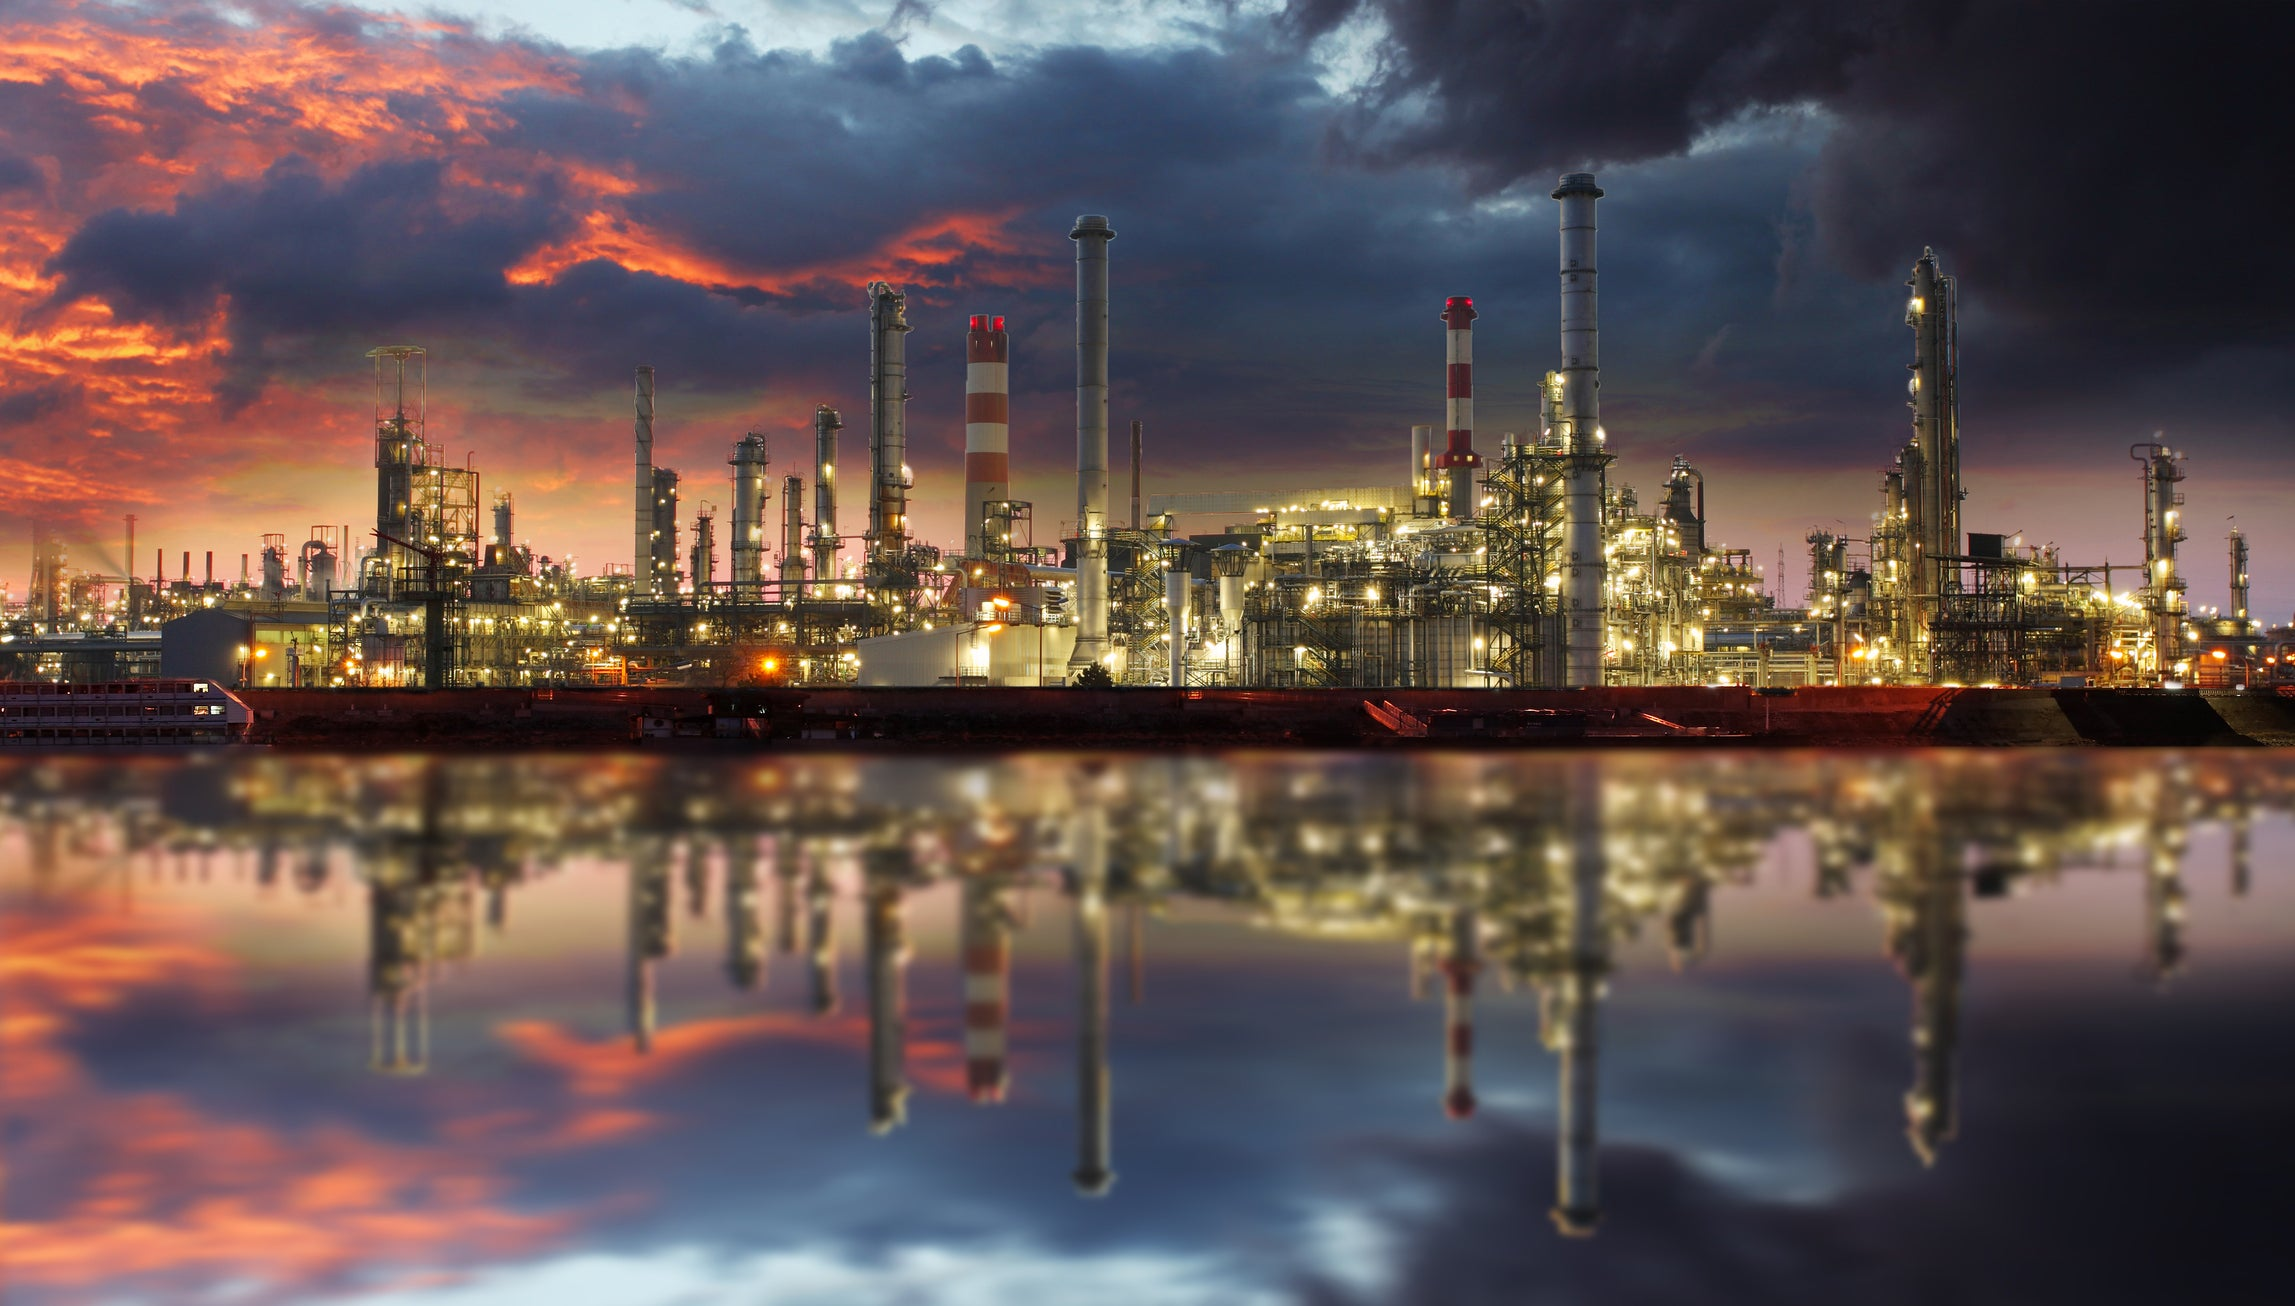 Oil Refinery Stocks Are Up 30 The Motley Fool